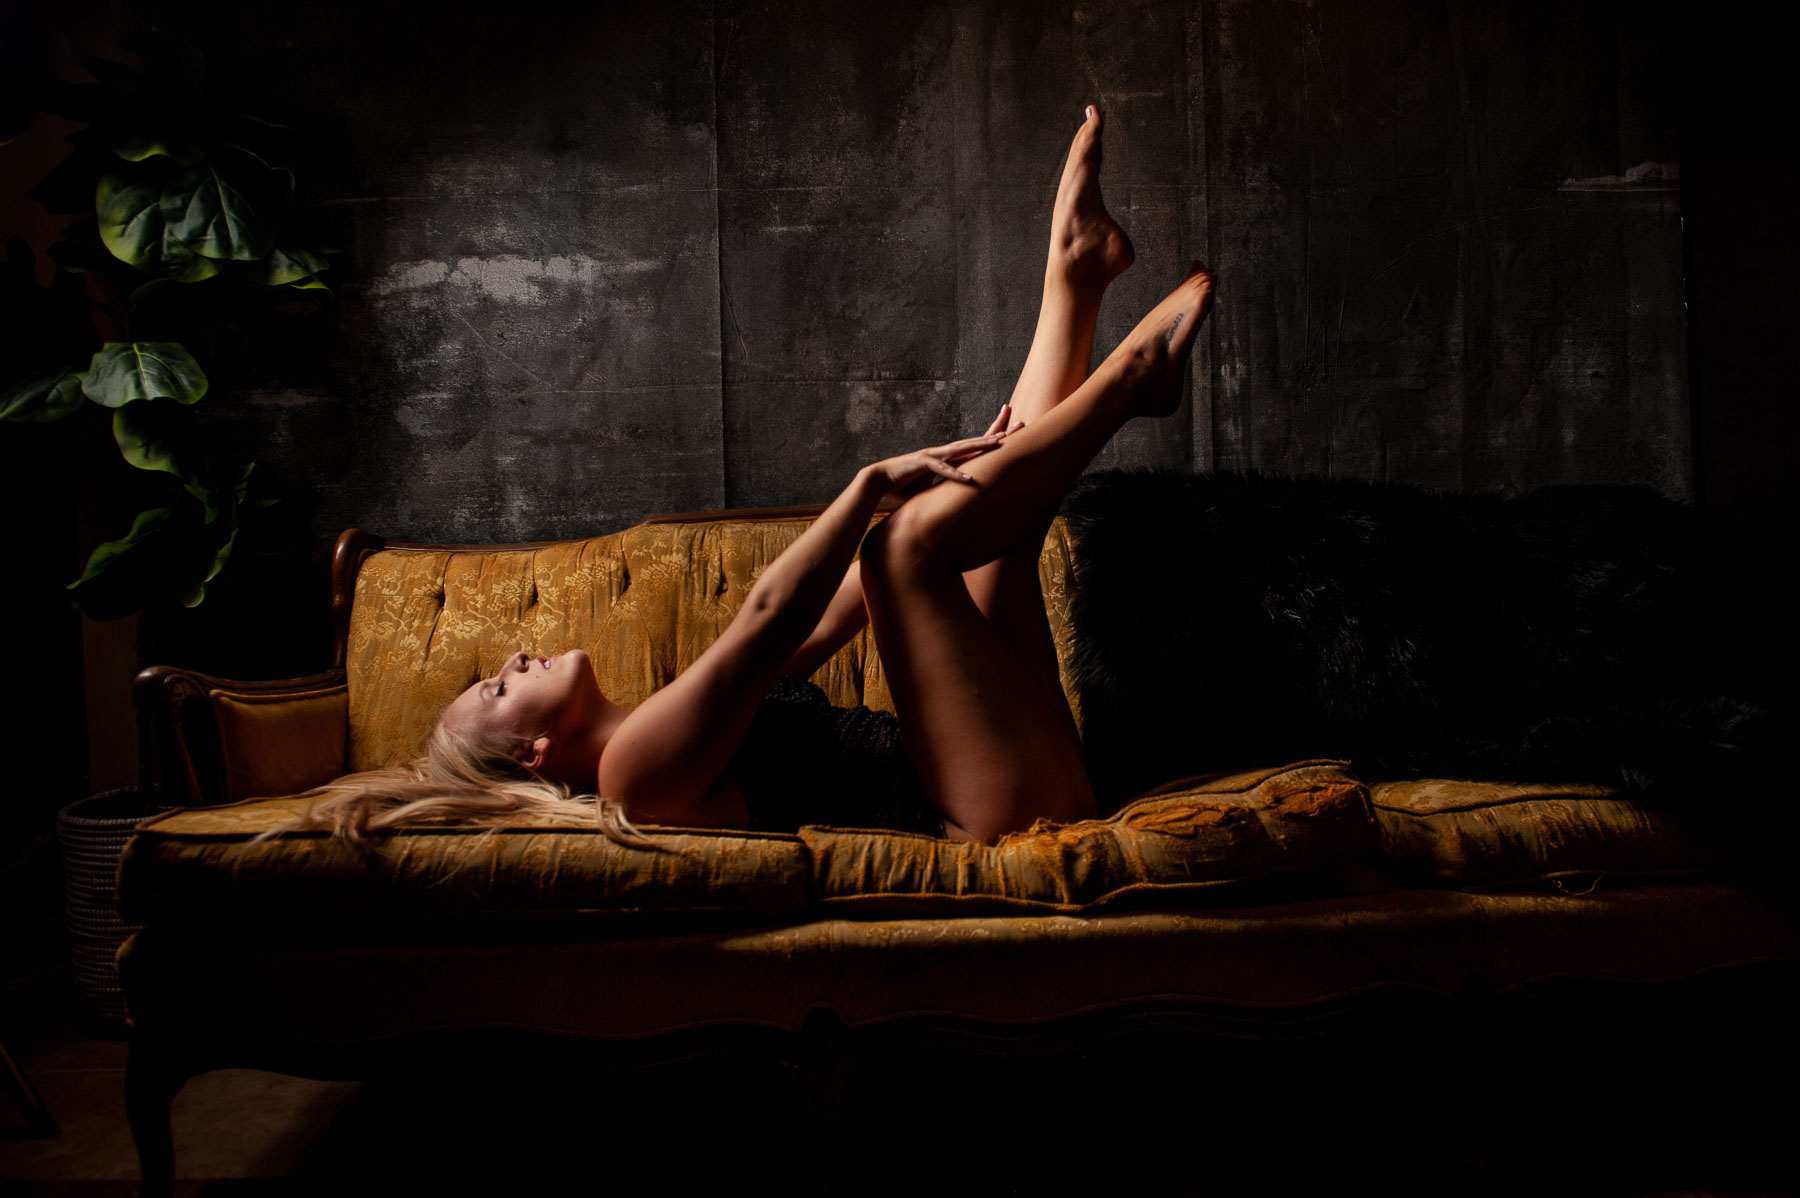 0002-LM-flagstaff-boudoir-photos-DSC_0119-Edit-2019ther2studio (1)